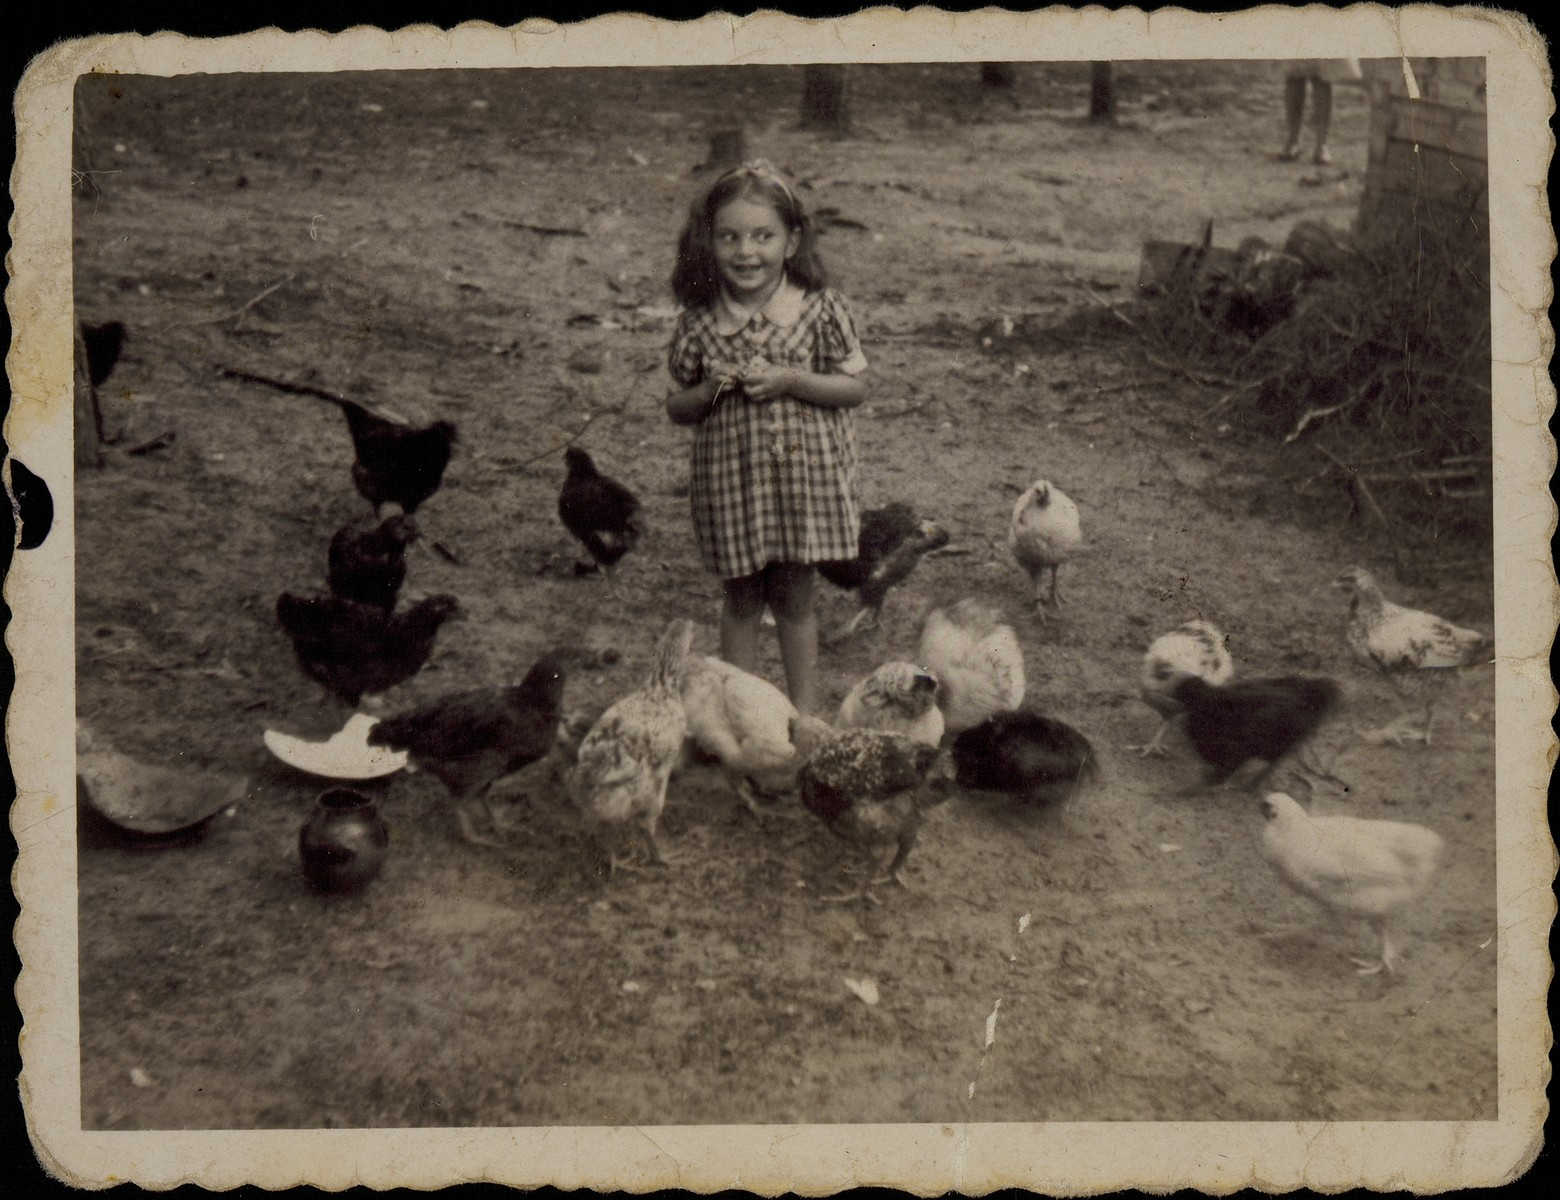 Yaffa Sonenson (now Eliach) feeds chickens in front of her family's summer home in Tetlance the same day that Germany occupied Eisiskes.   This was the last photograph taken by her grandmother, Alte Katz, who was killed by the Germans in the September 1941 mass shooting action in Eisiskes.